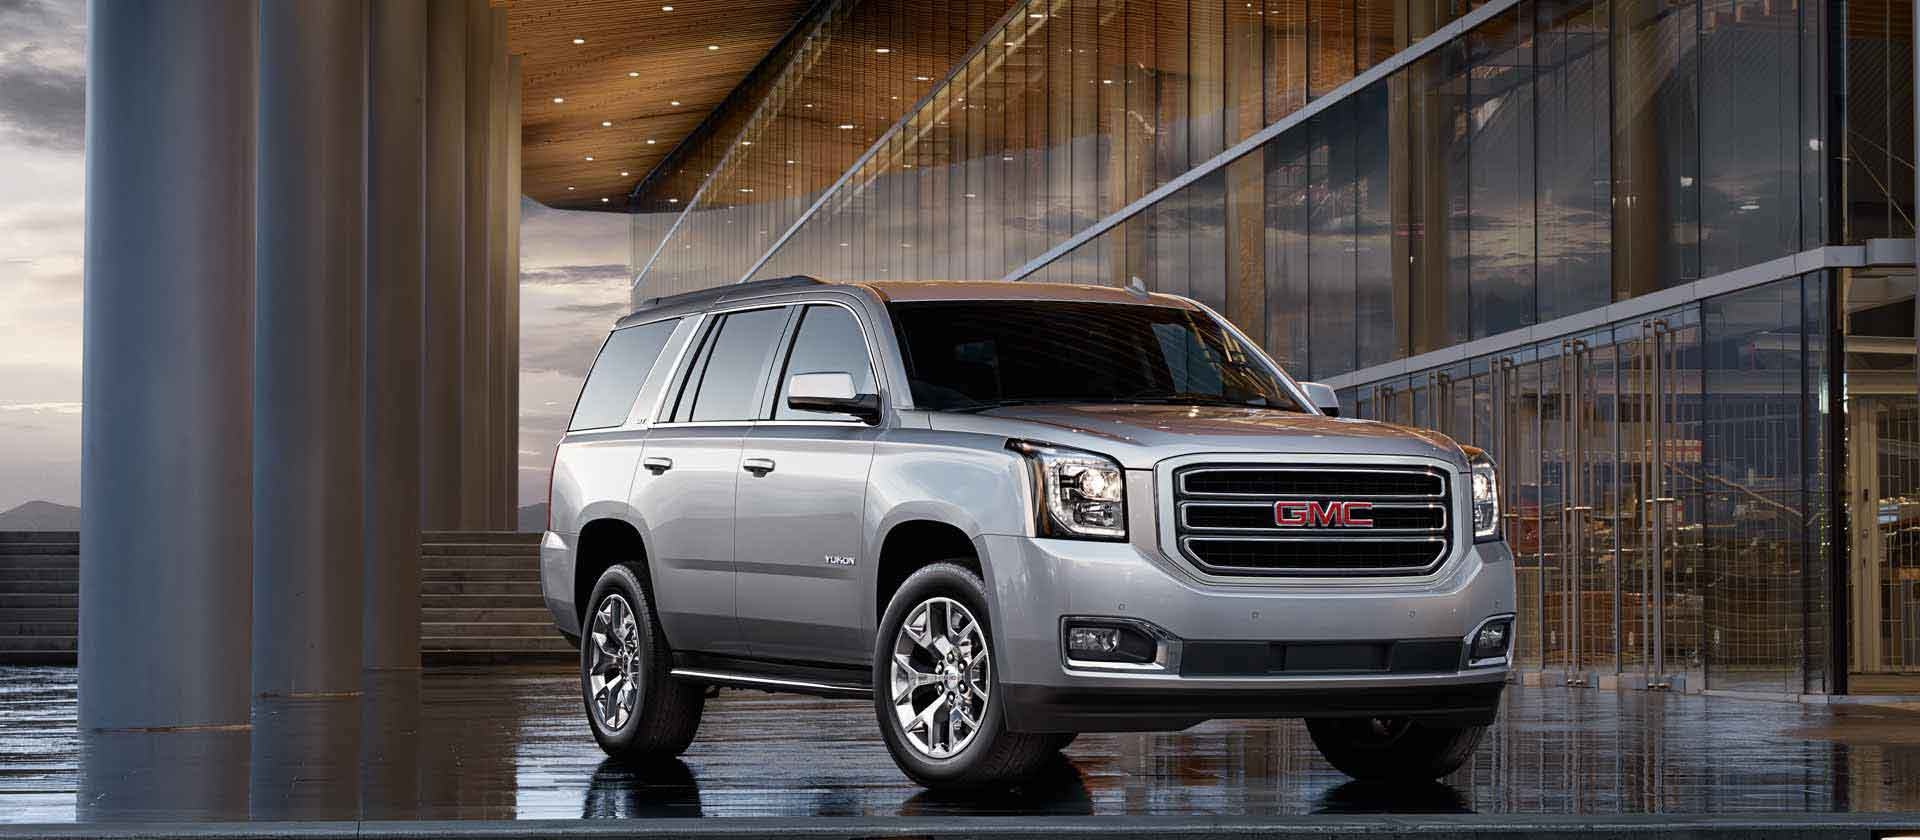 of cherokee down dealers promotions ram nj large size full jeep deals lease gmc